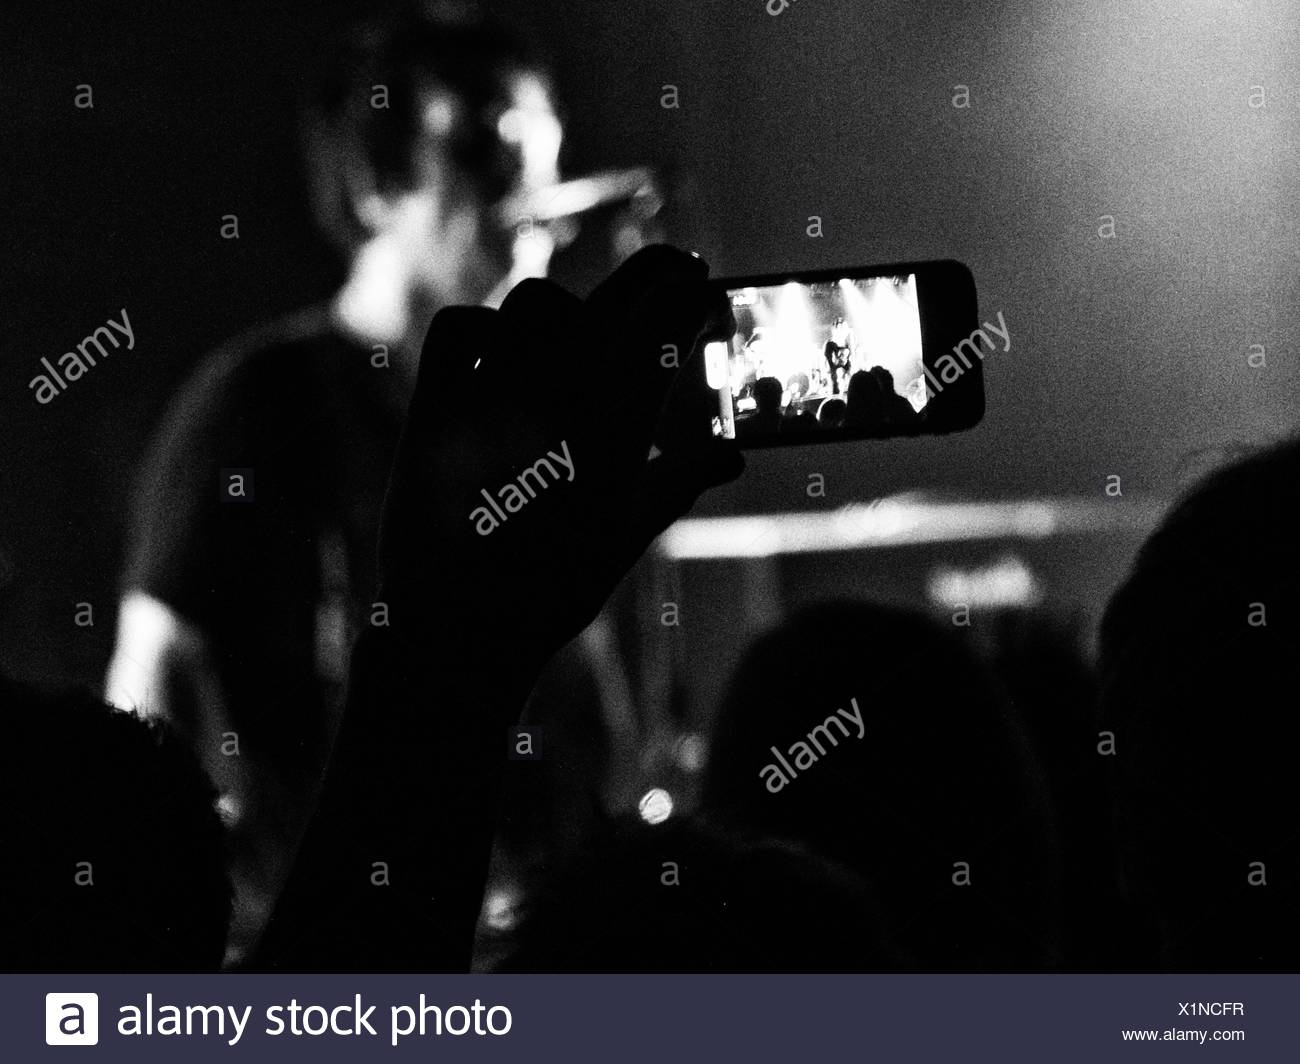 Person Taking Photos With Digital Camera During Concert - Stock Image